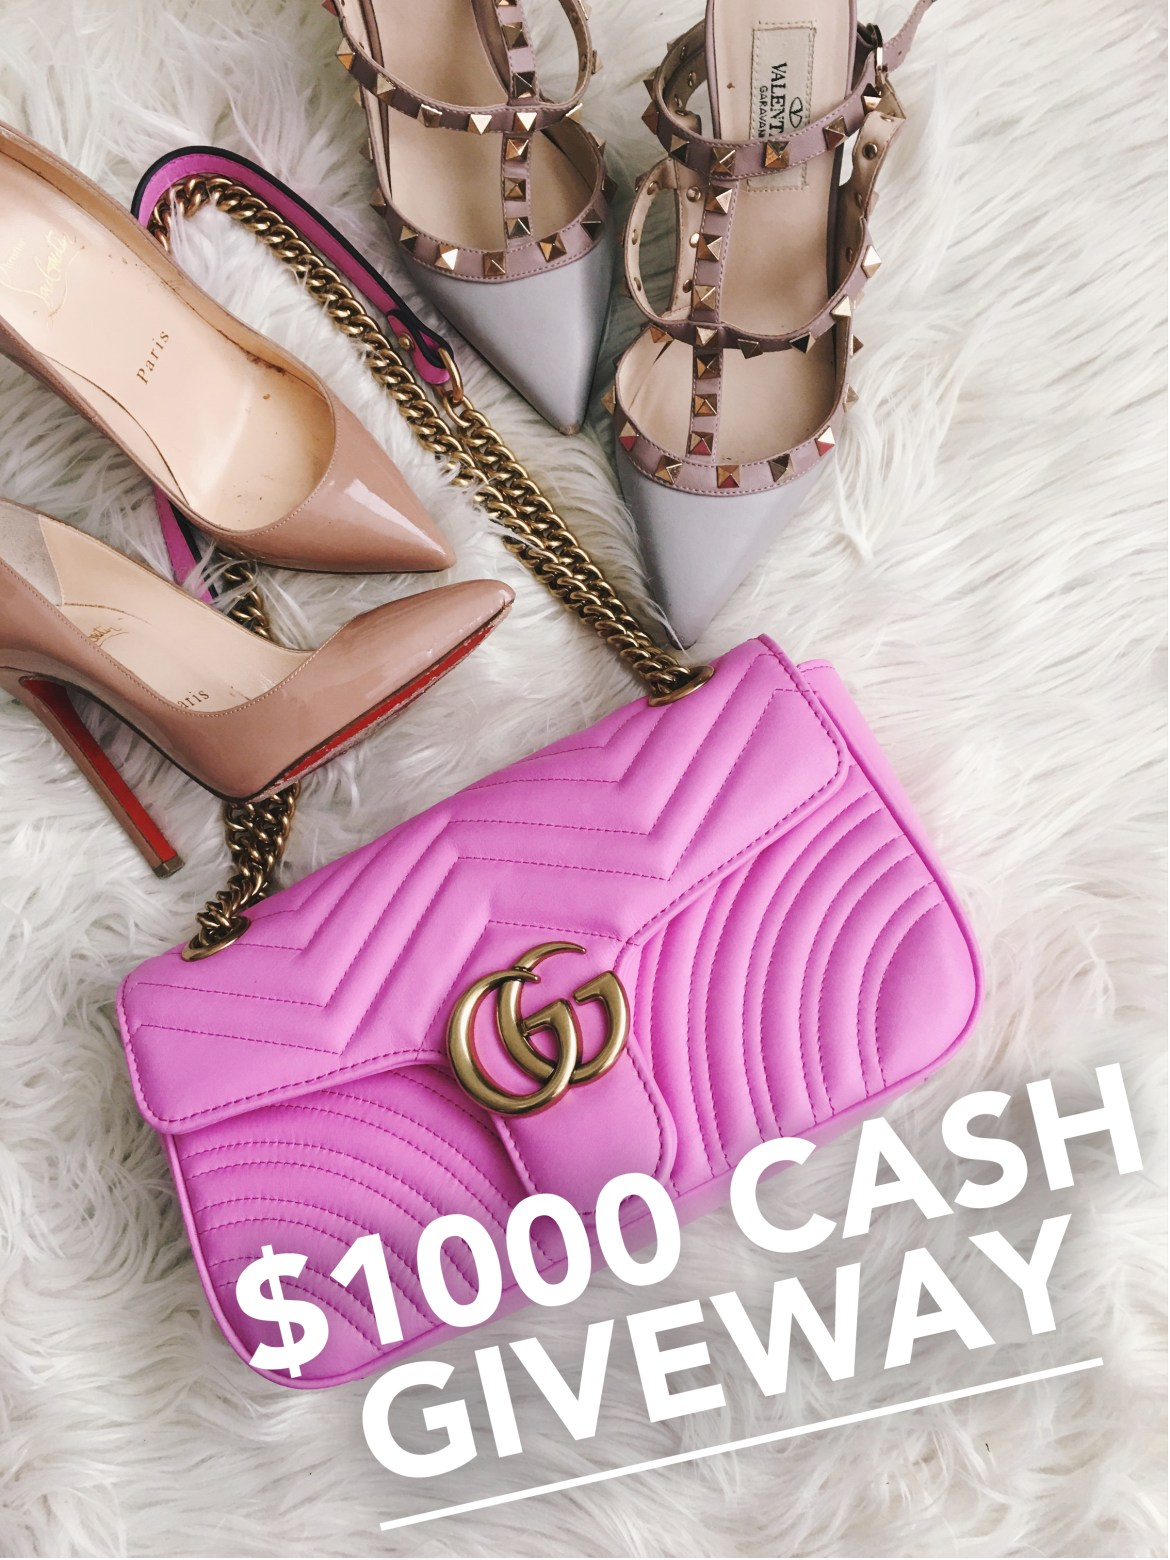 cash giveaway, giveaway, dallas blogger